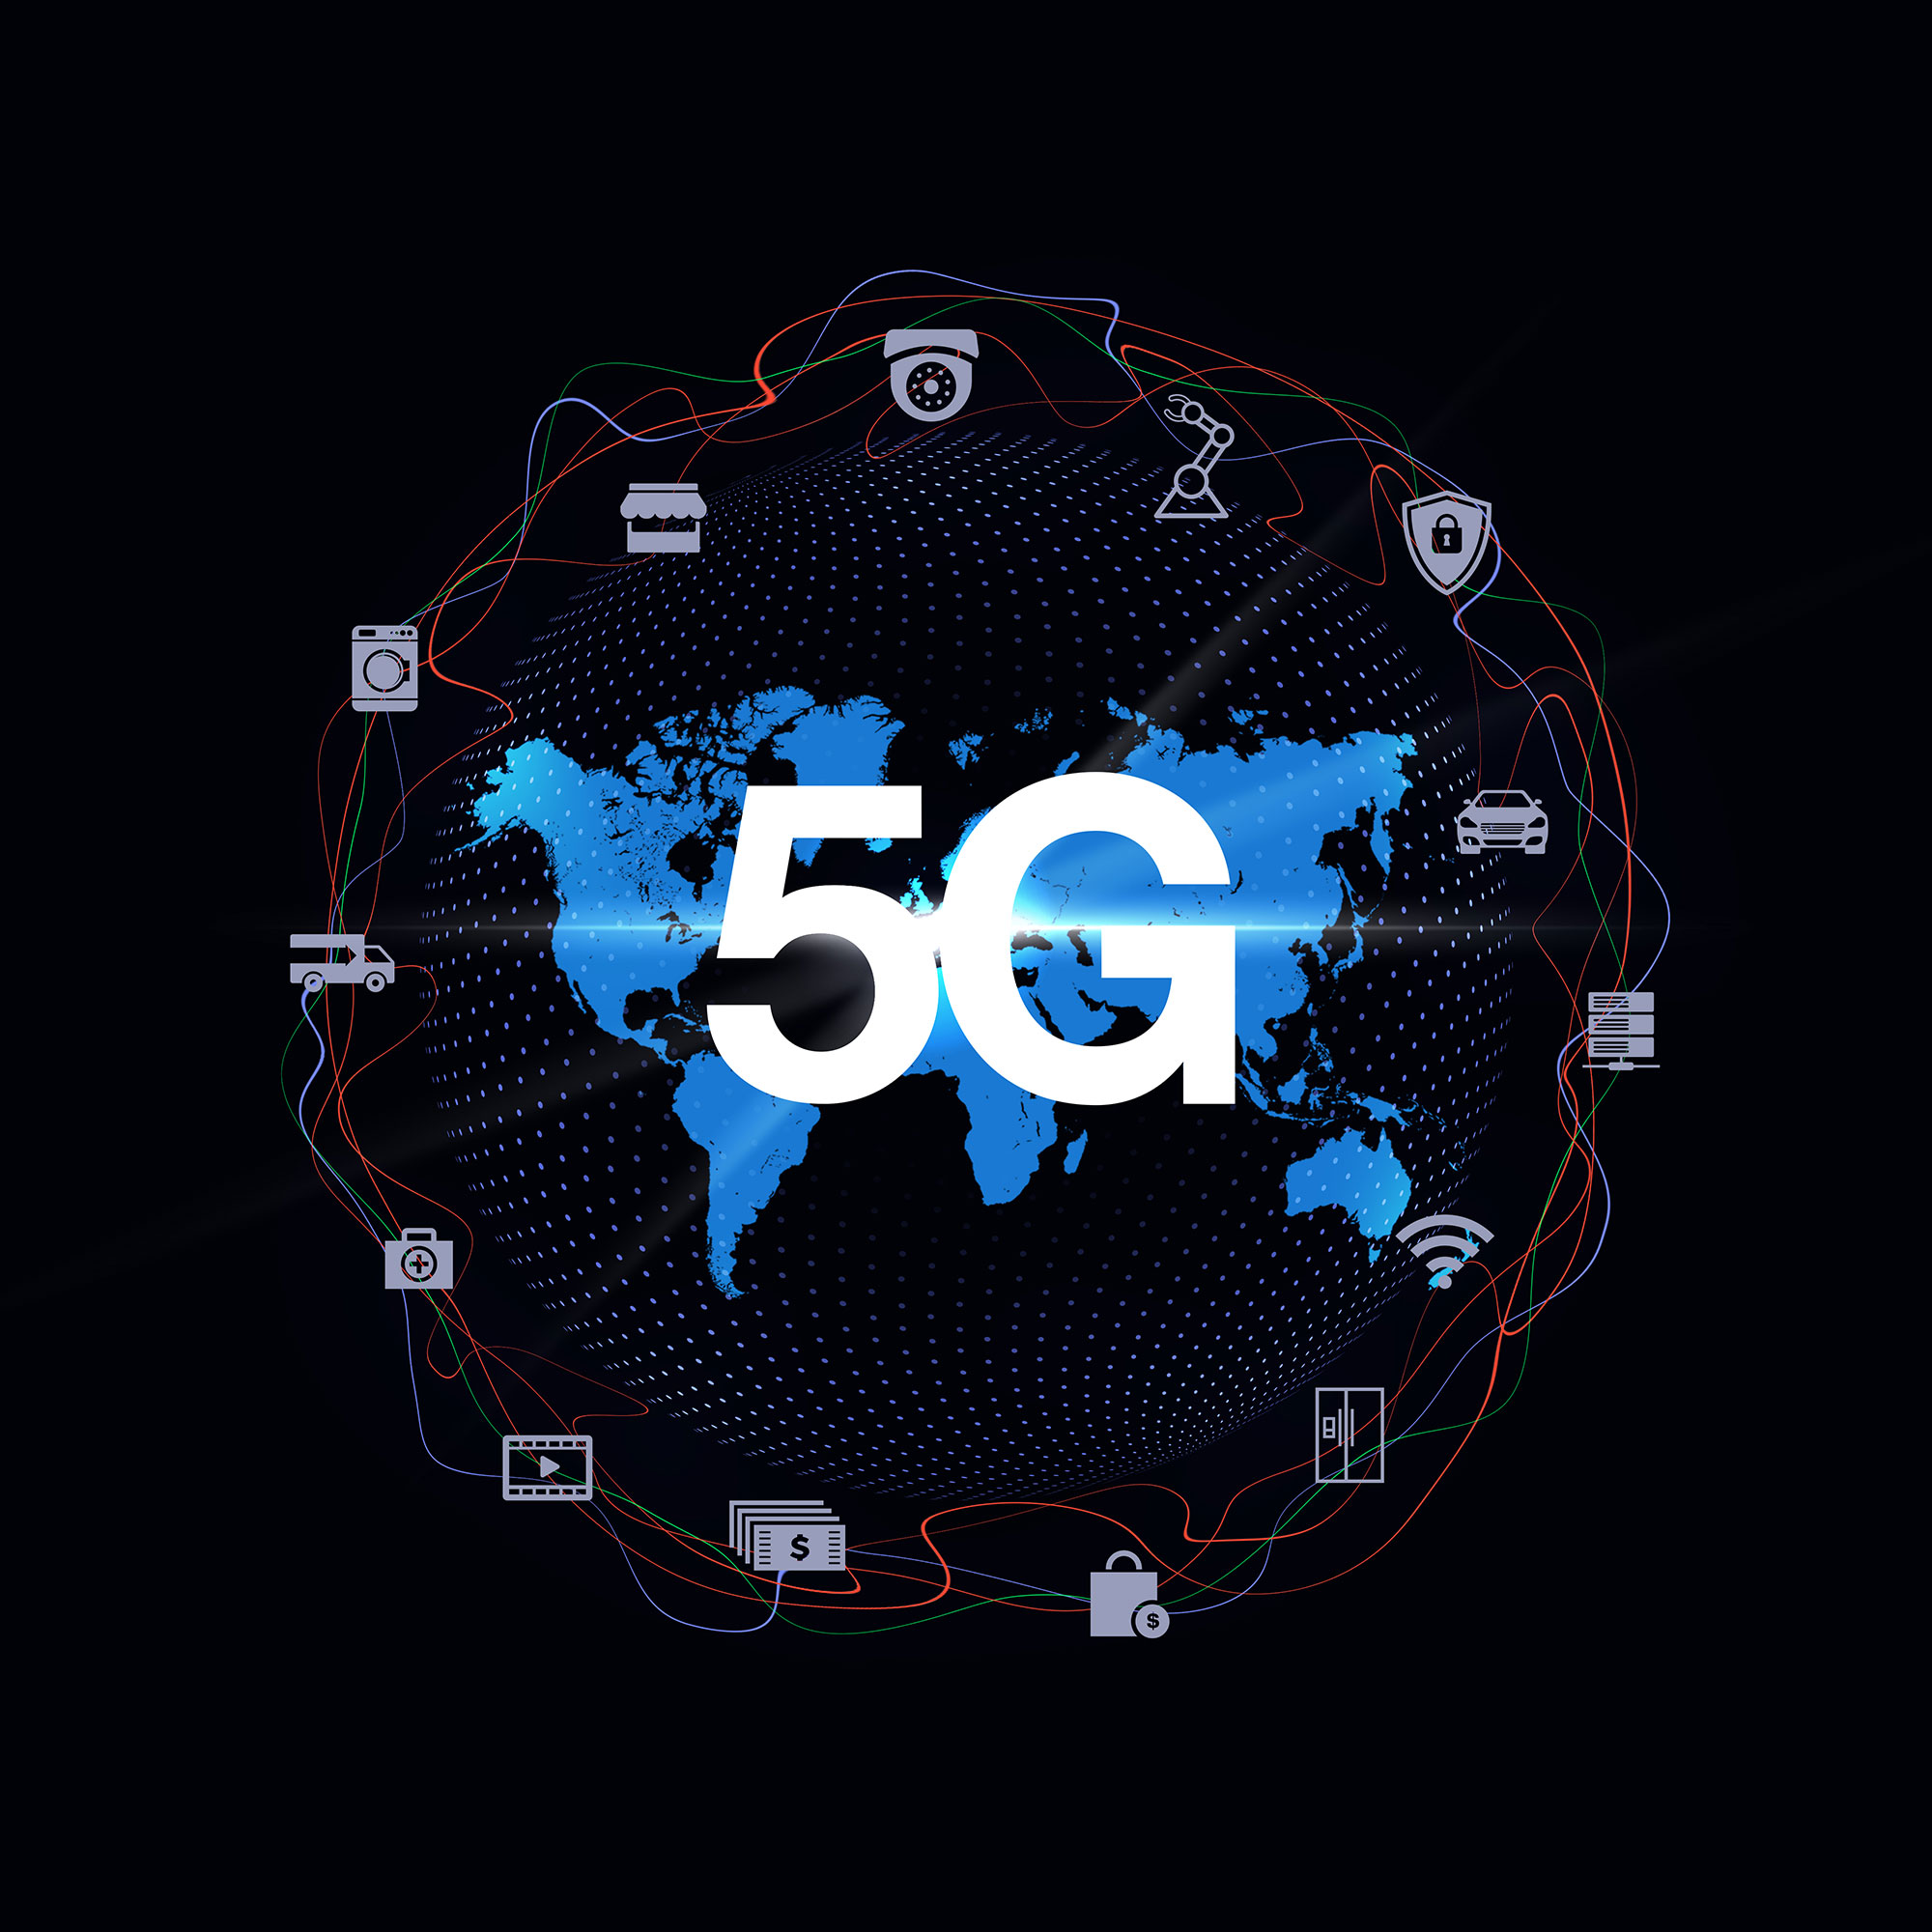 5g-concept-globe-connections-applications